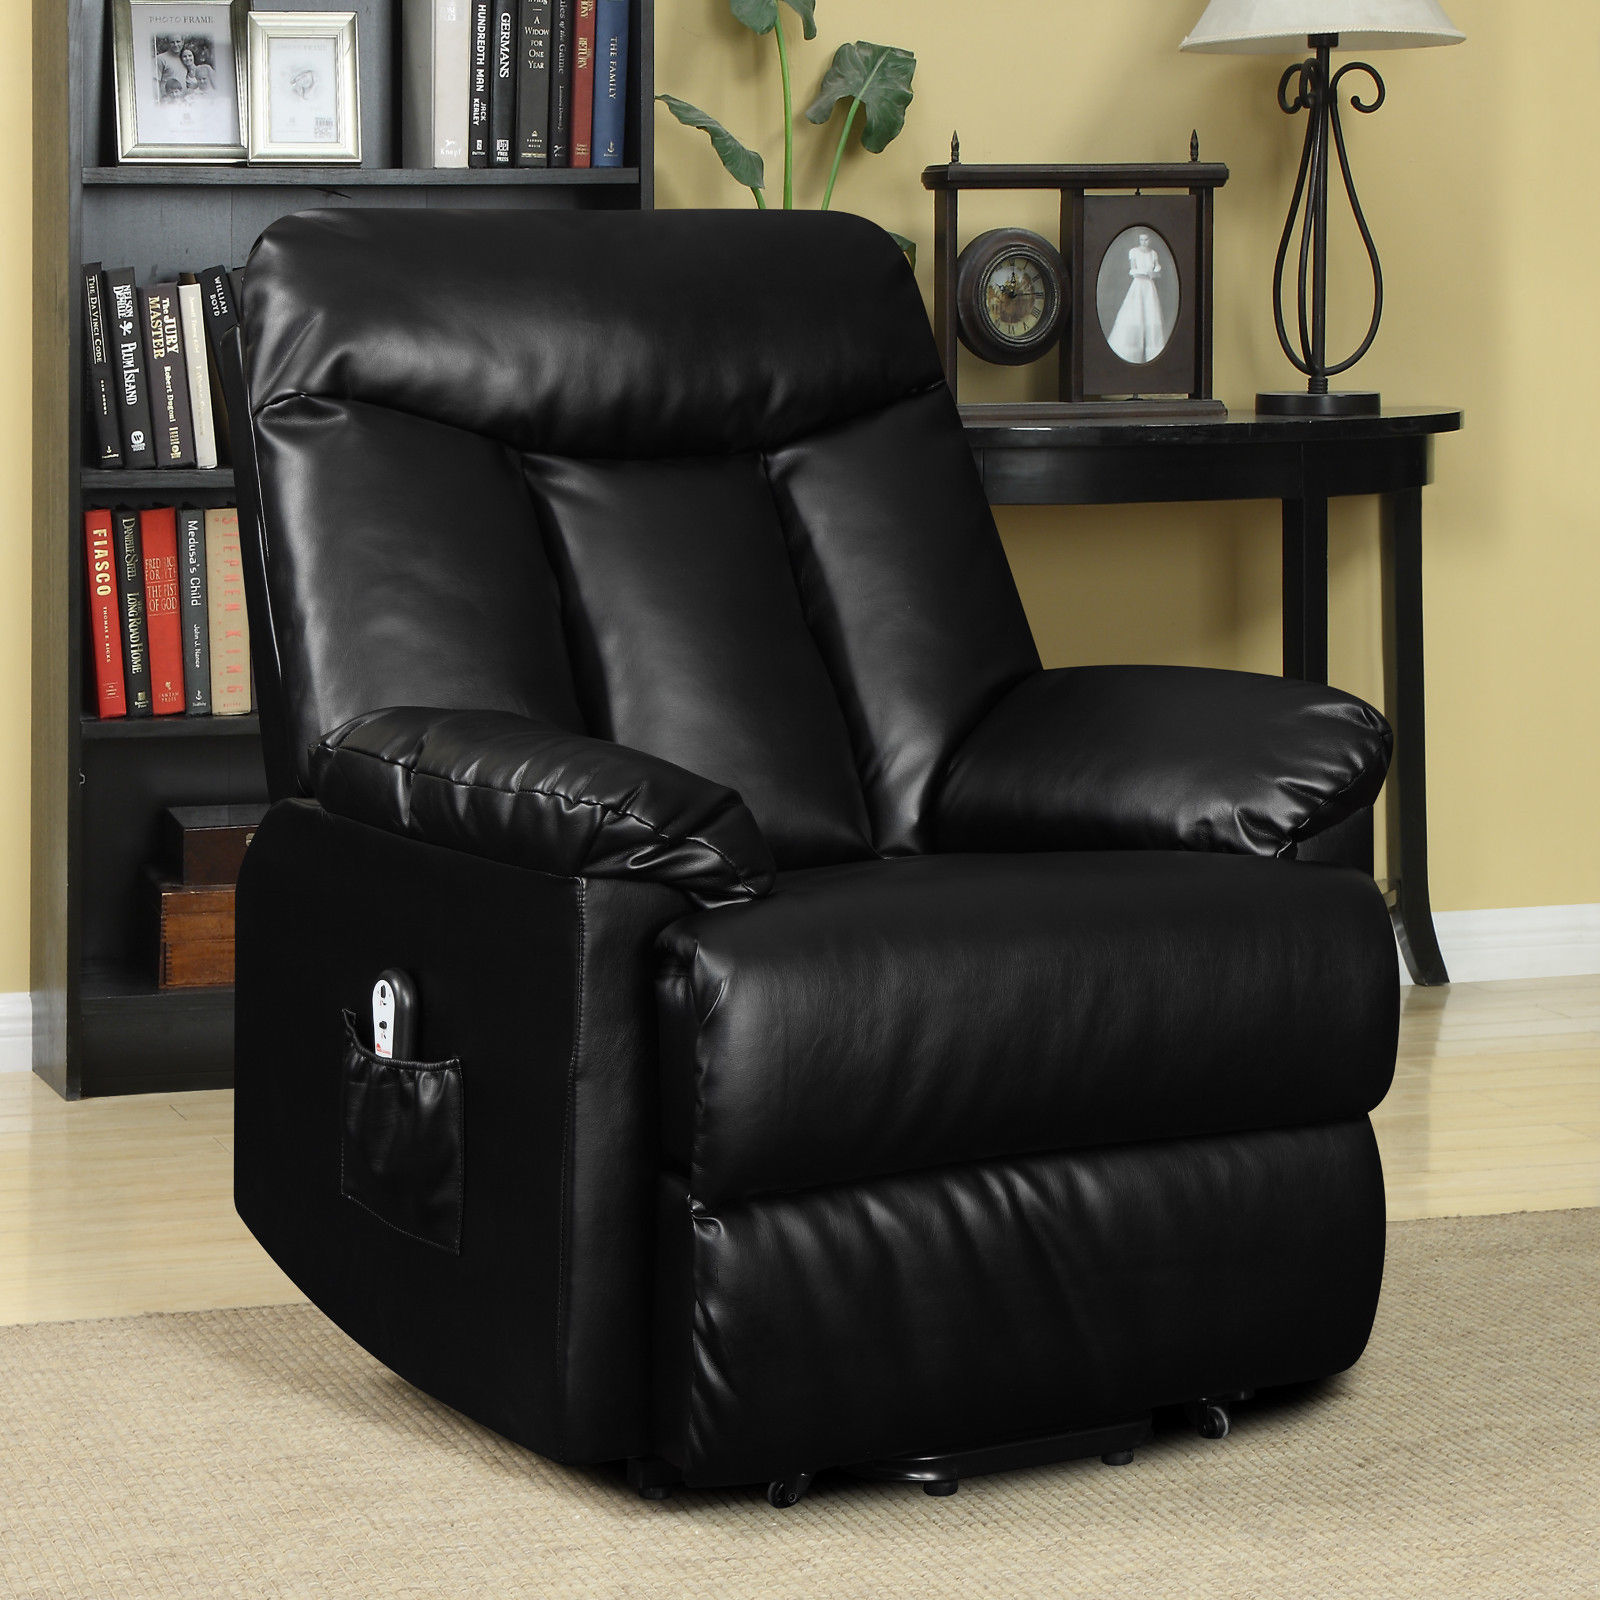 seat lift chair infant vibrating electric recliner black leather power motion